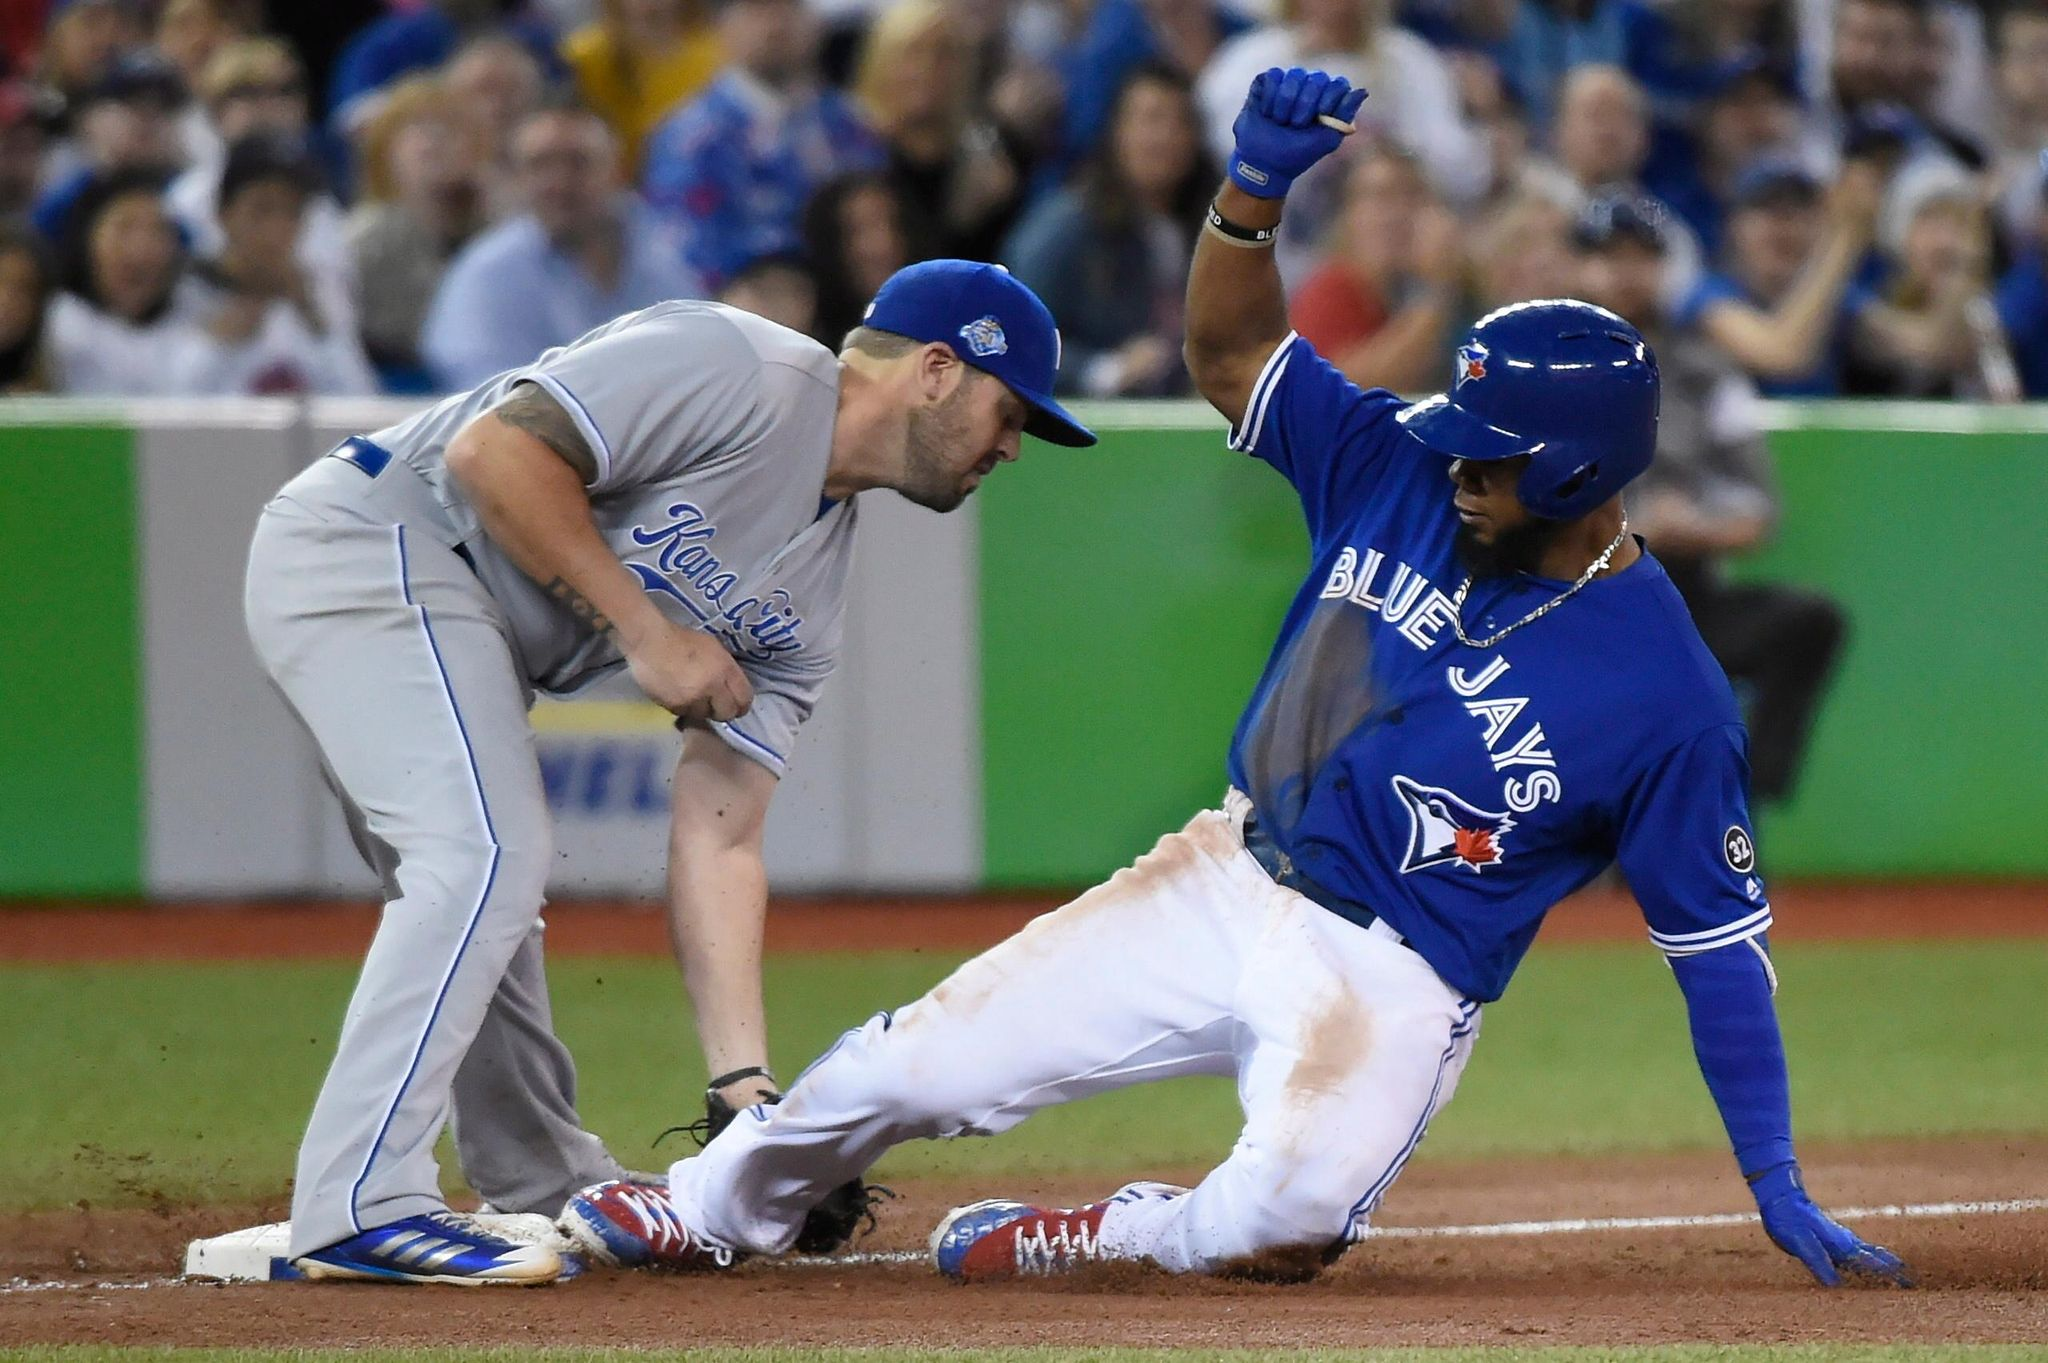 Royals_blue_jays_baseball_80005_s2048x1363